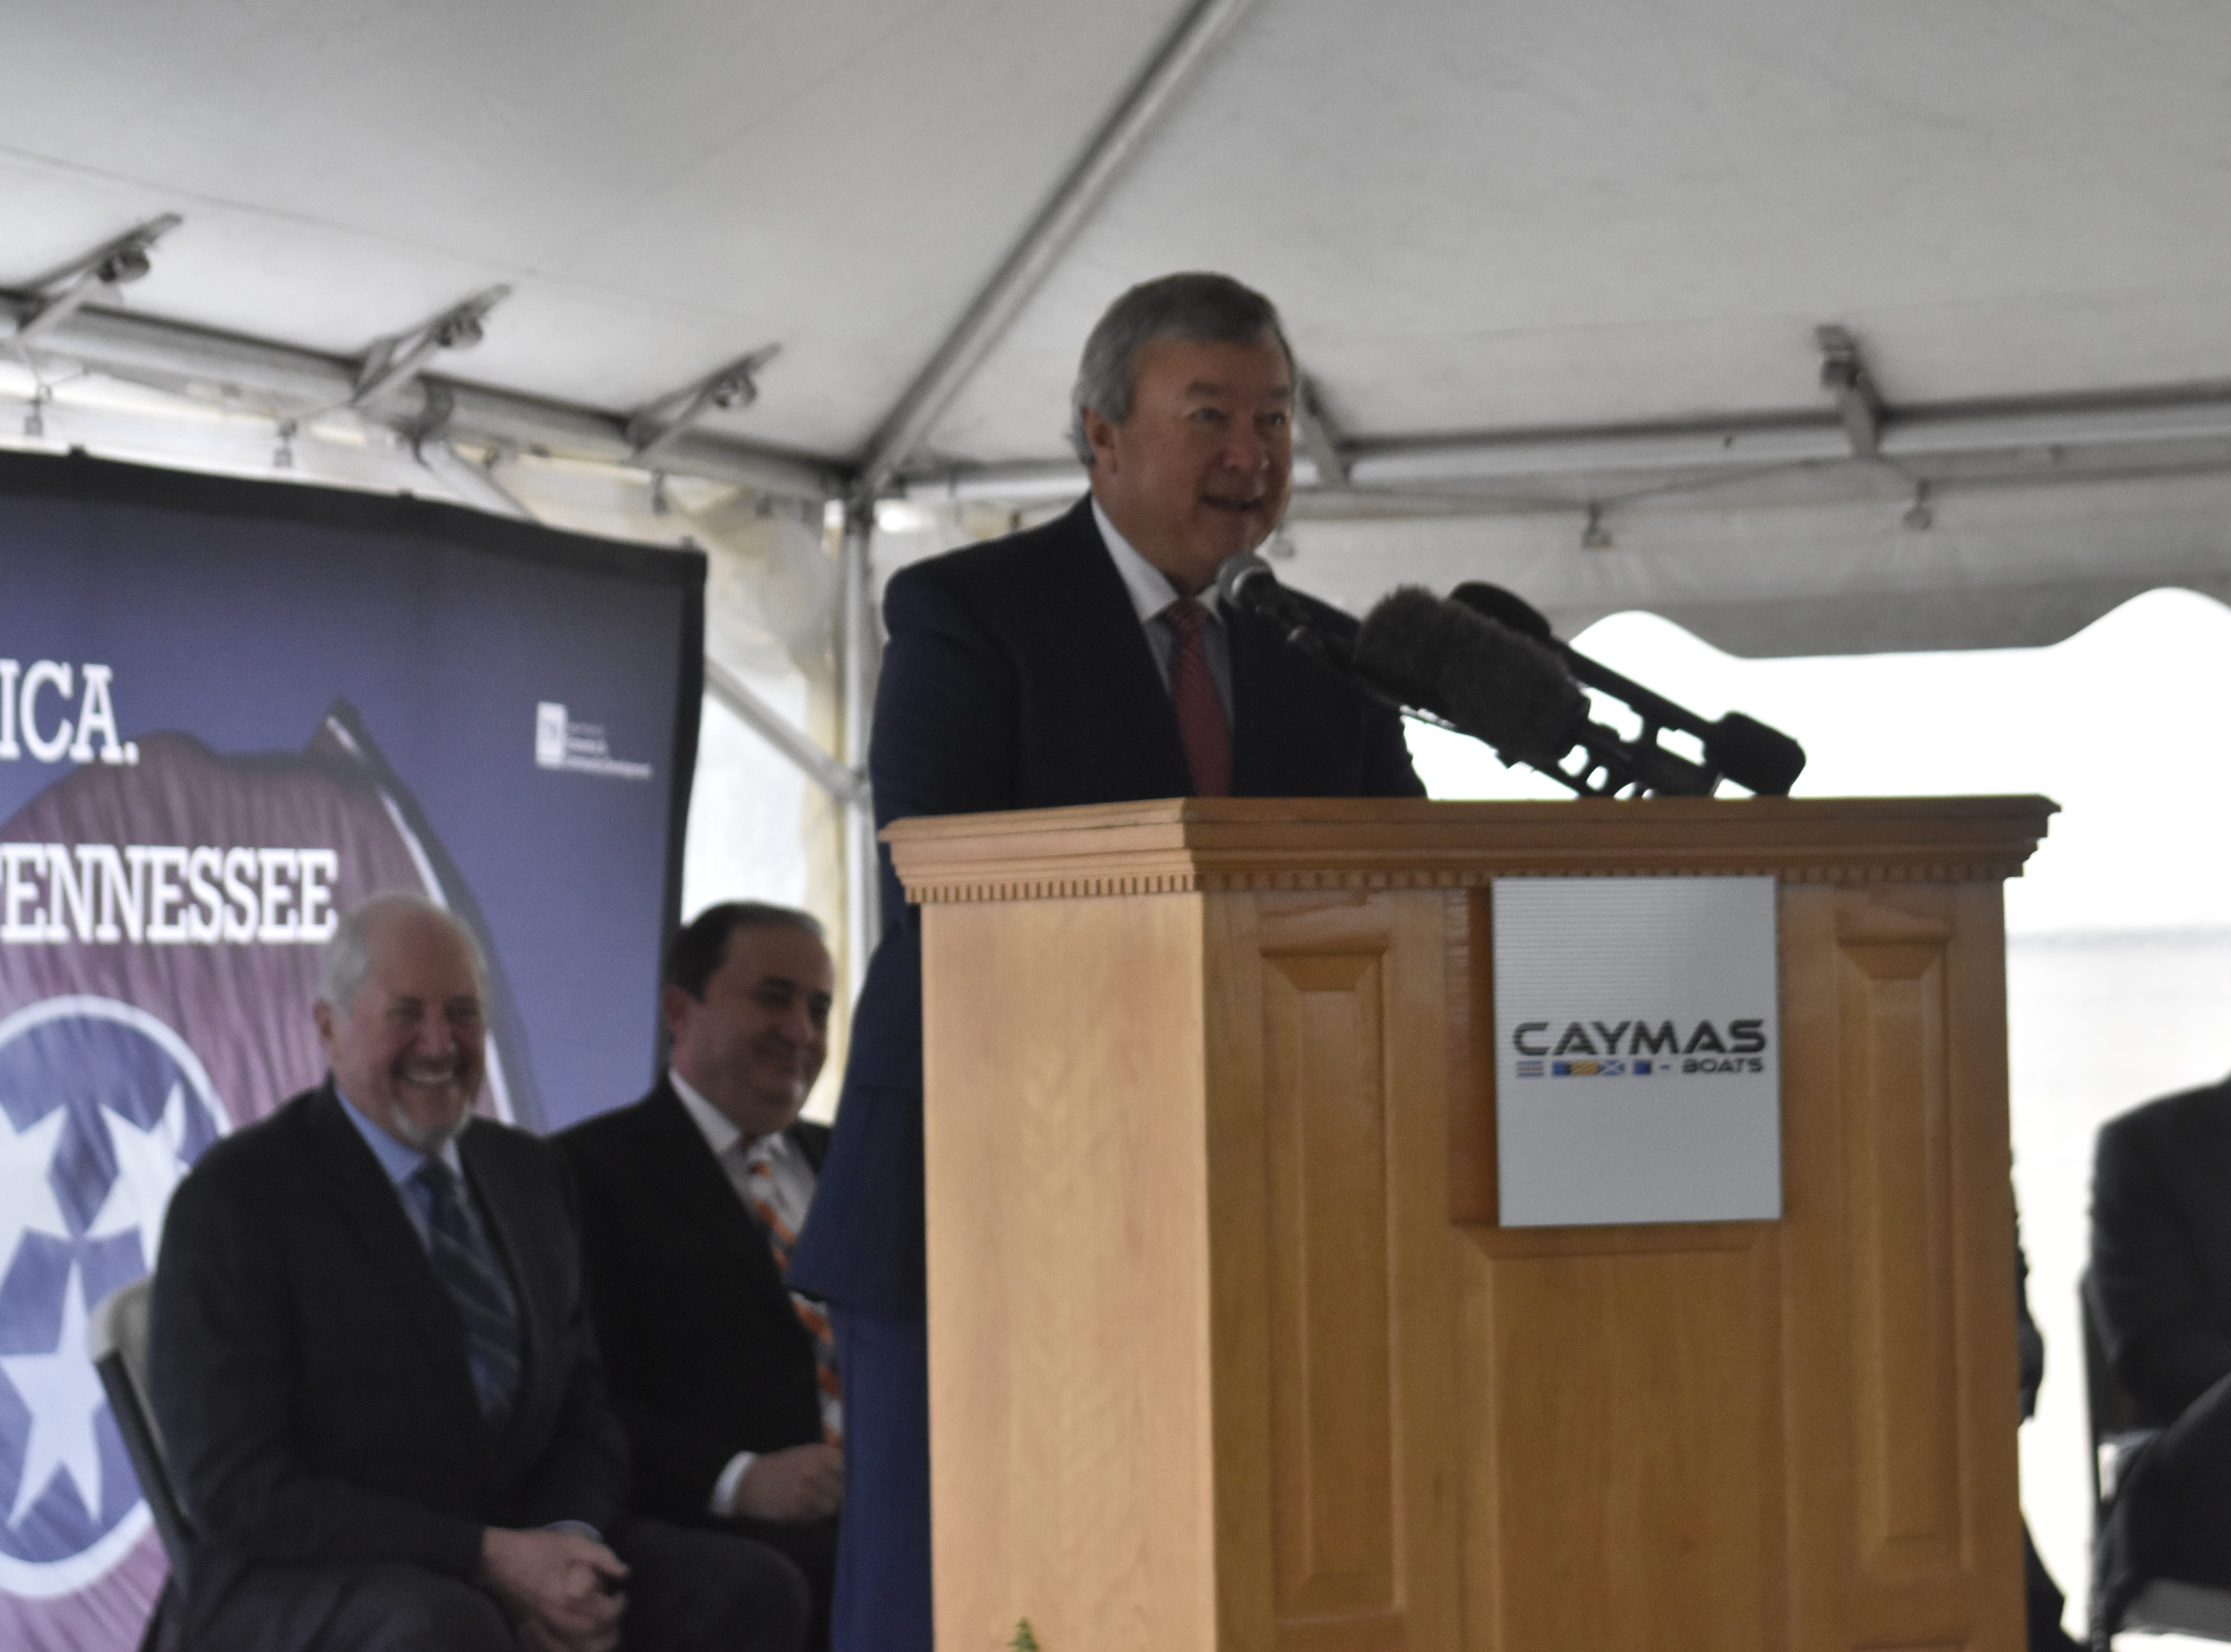 Earl Bentz, founder of Caymas Boats speaks at the groundbreaking for the company on Monday, Nov. 19 in Ashland City.